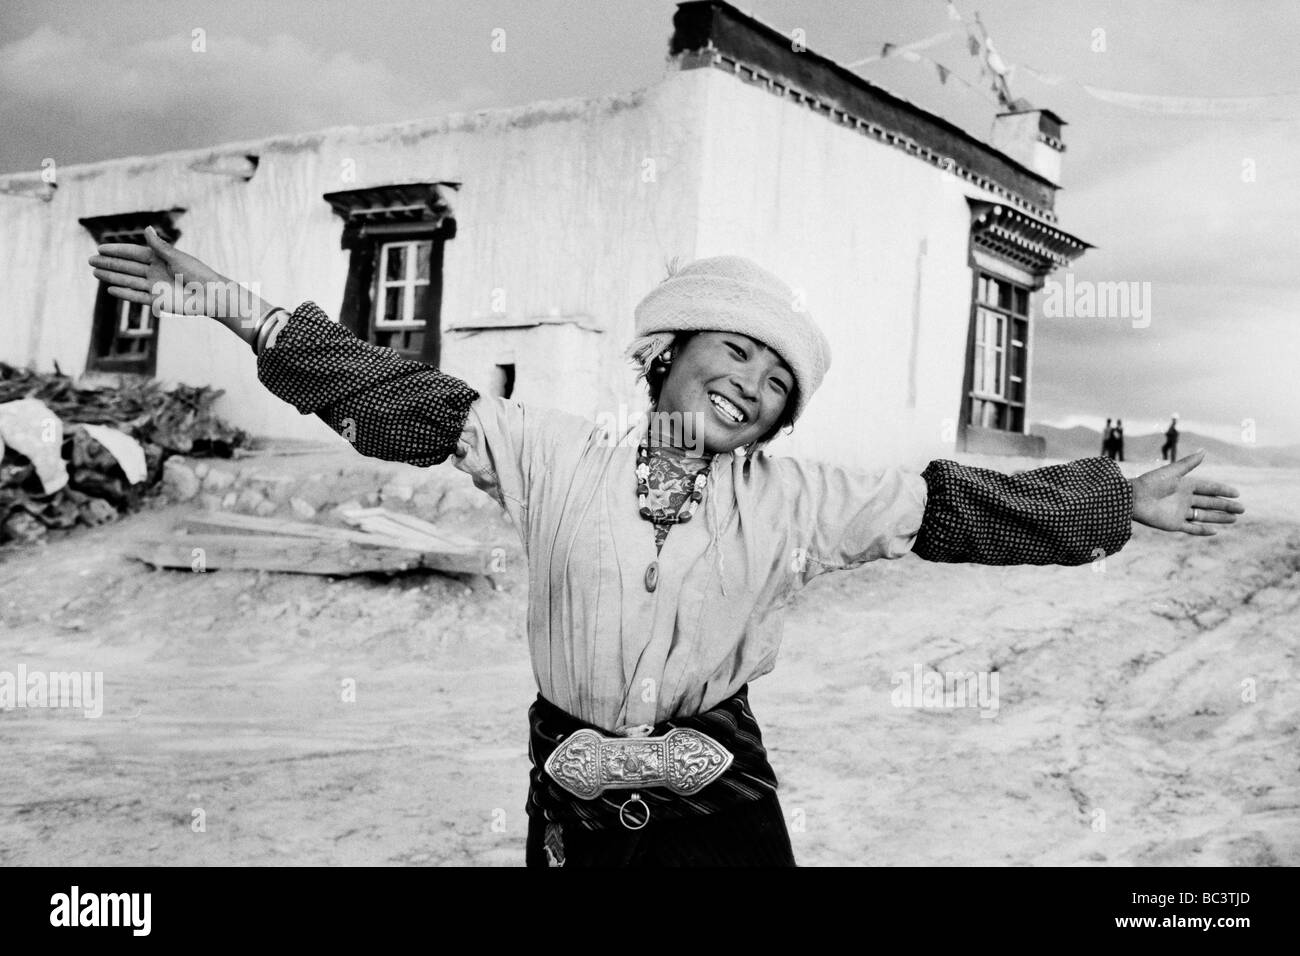 old tingri stock photos & old tingri stock images - alamy